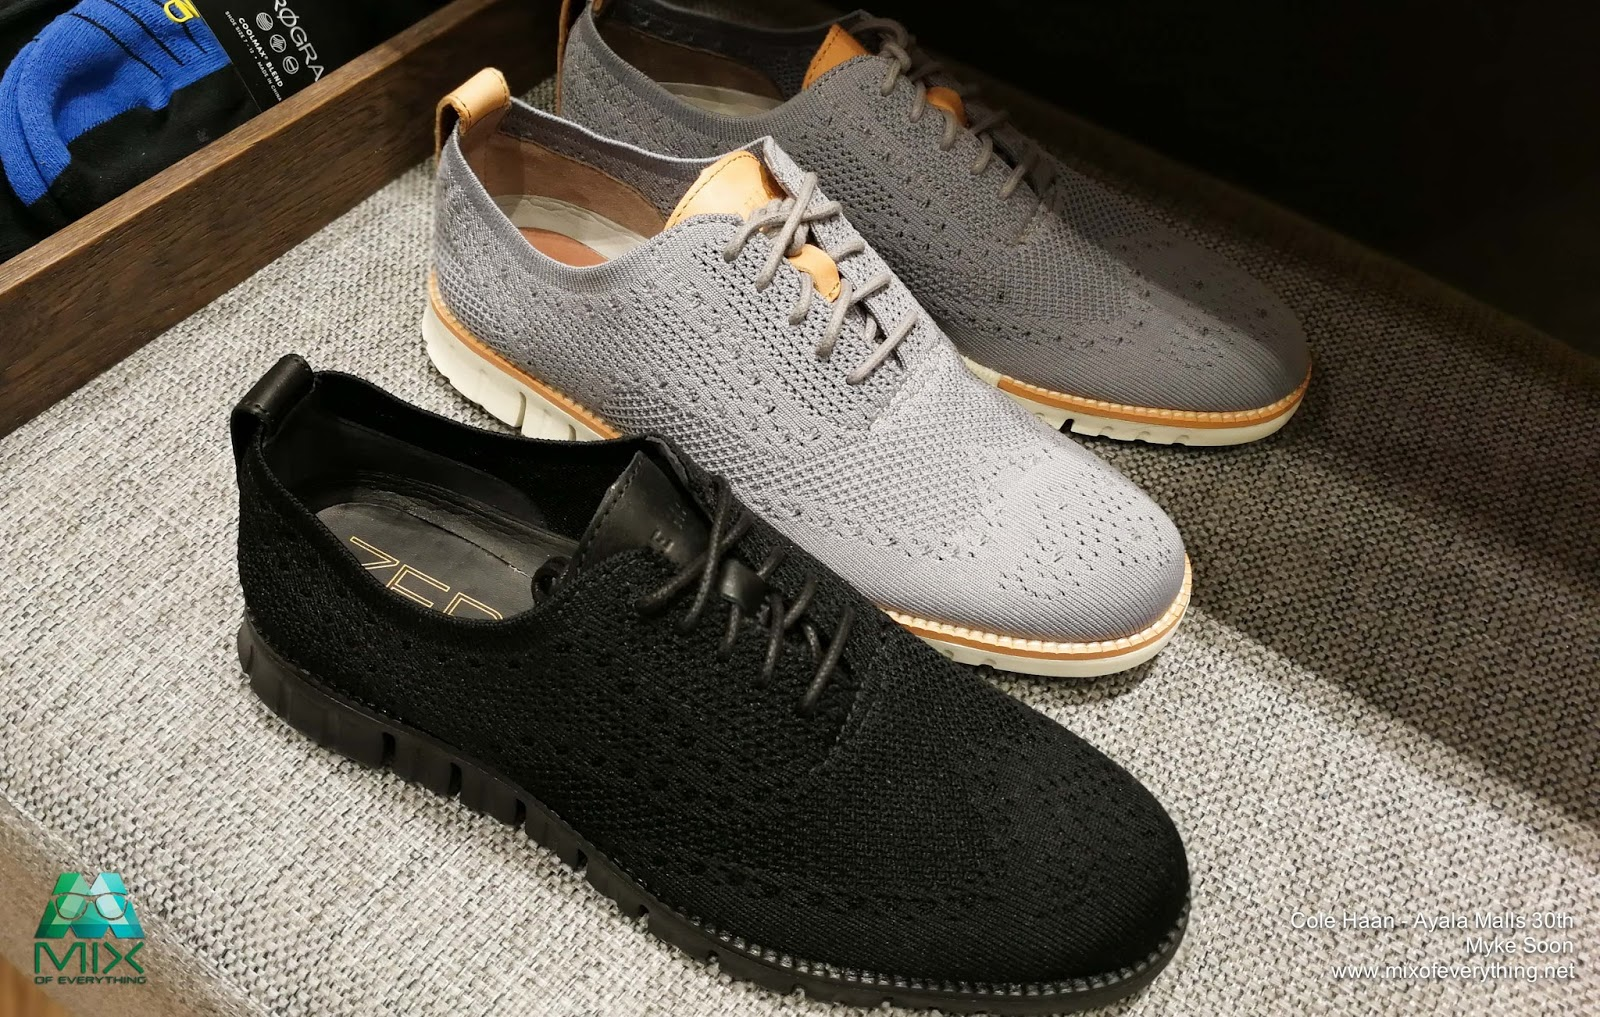 Cole Haan Philippines Opens 7th Store at Ayala Malls The